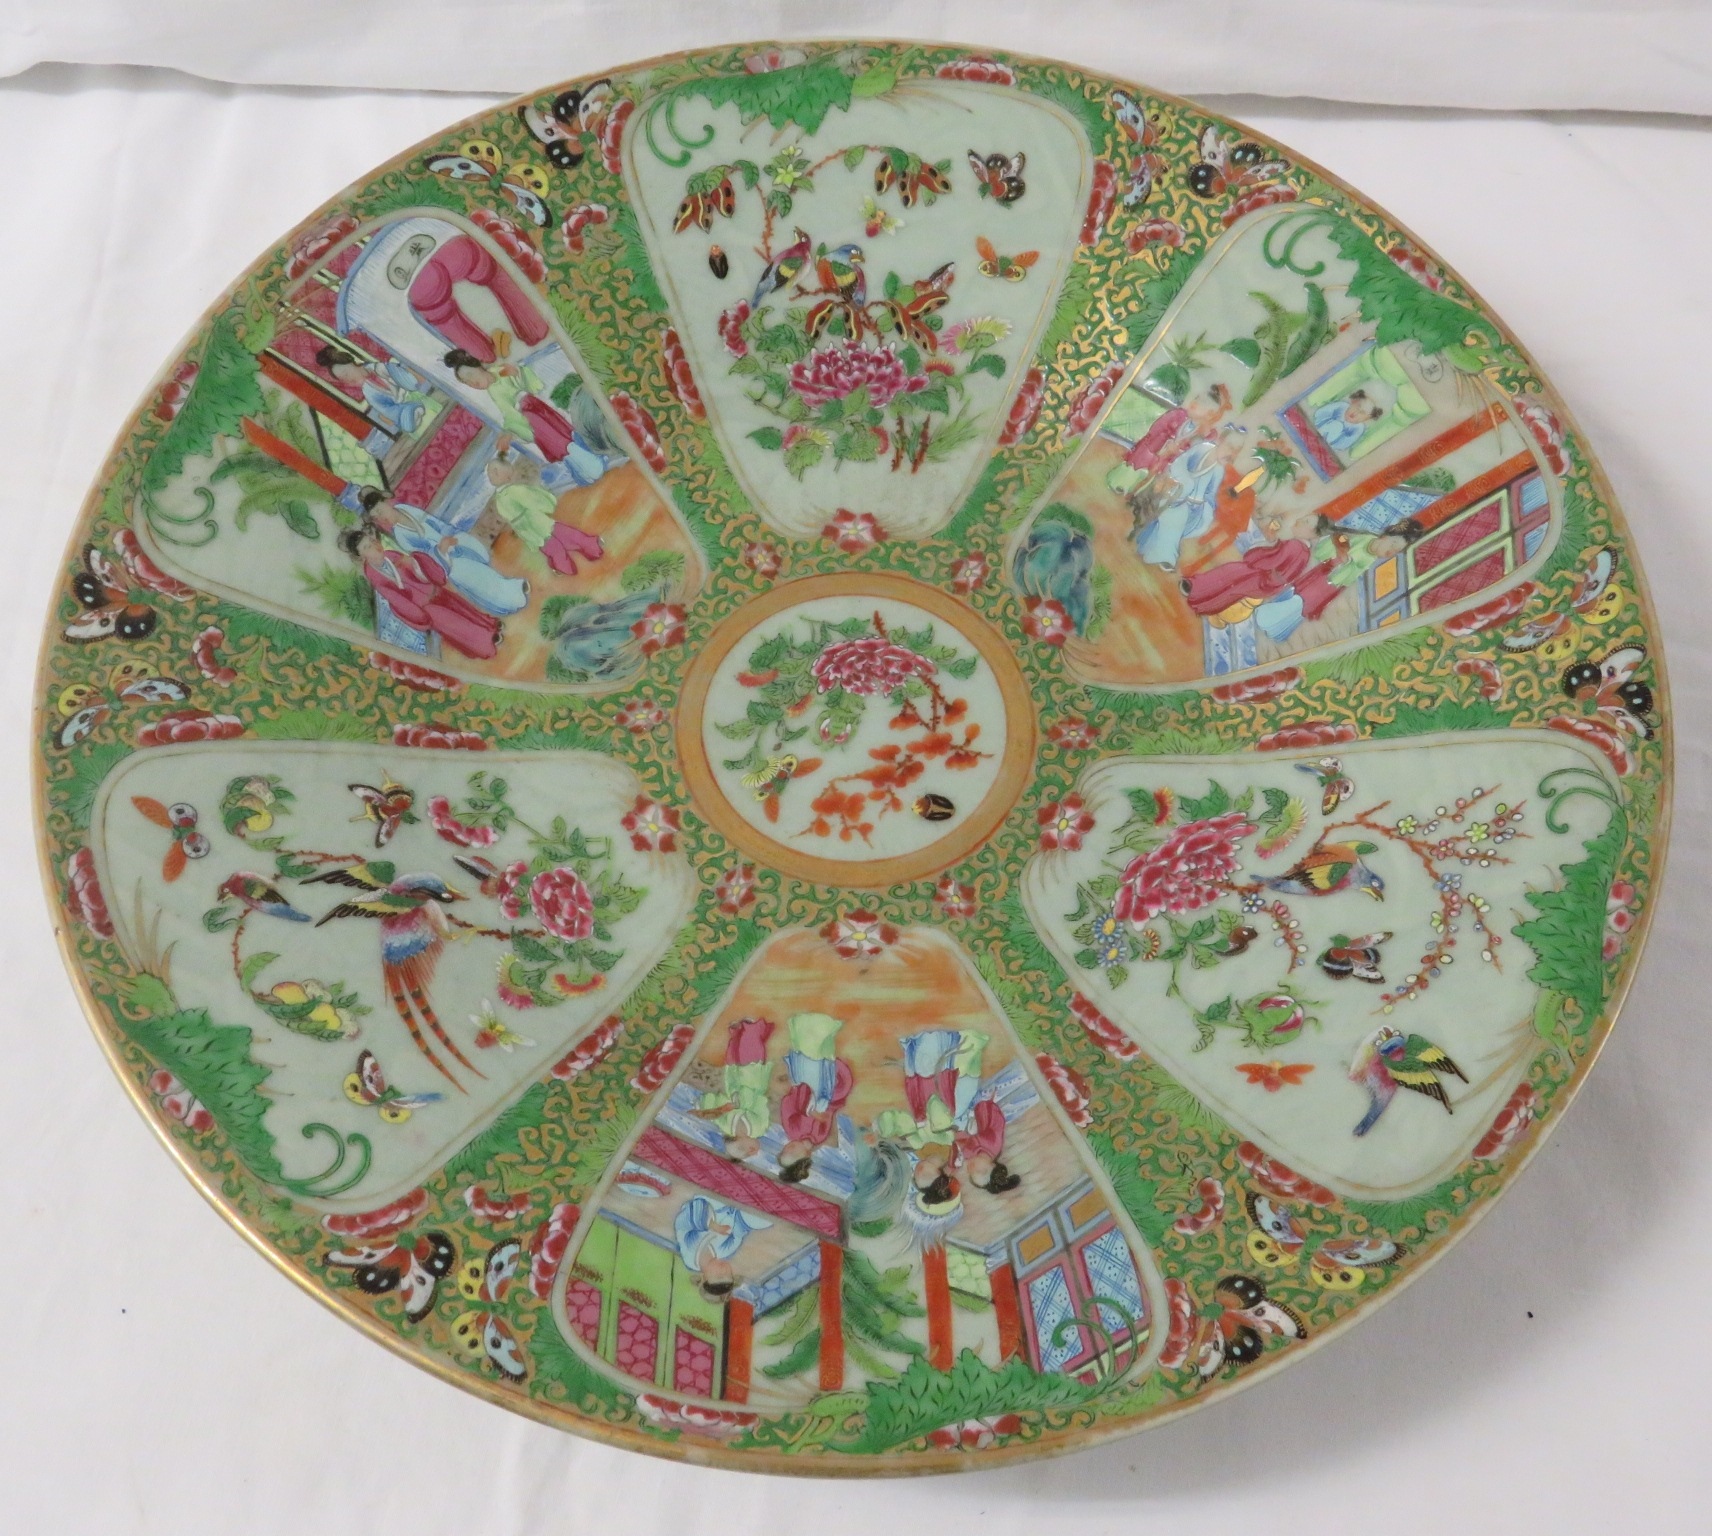 Lot 52 - Chinese famille rose porcelain circular dish, celadon ground with dark green scrolled foliage and